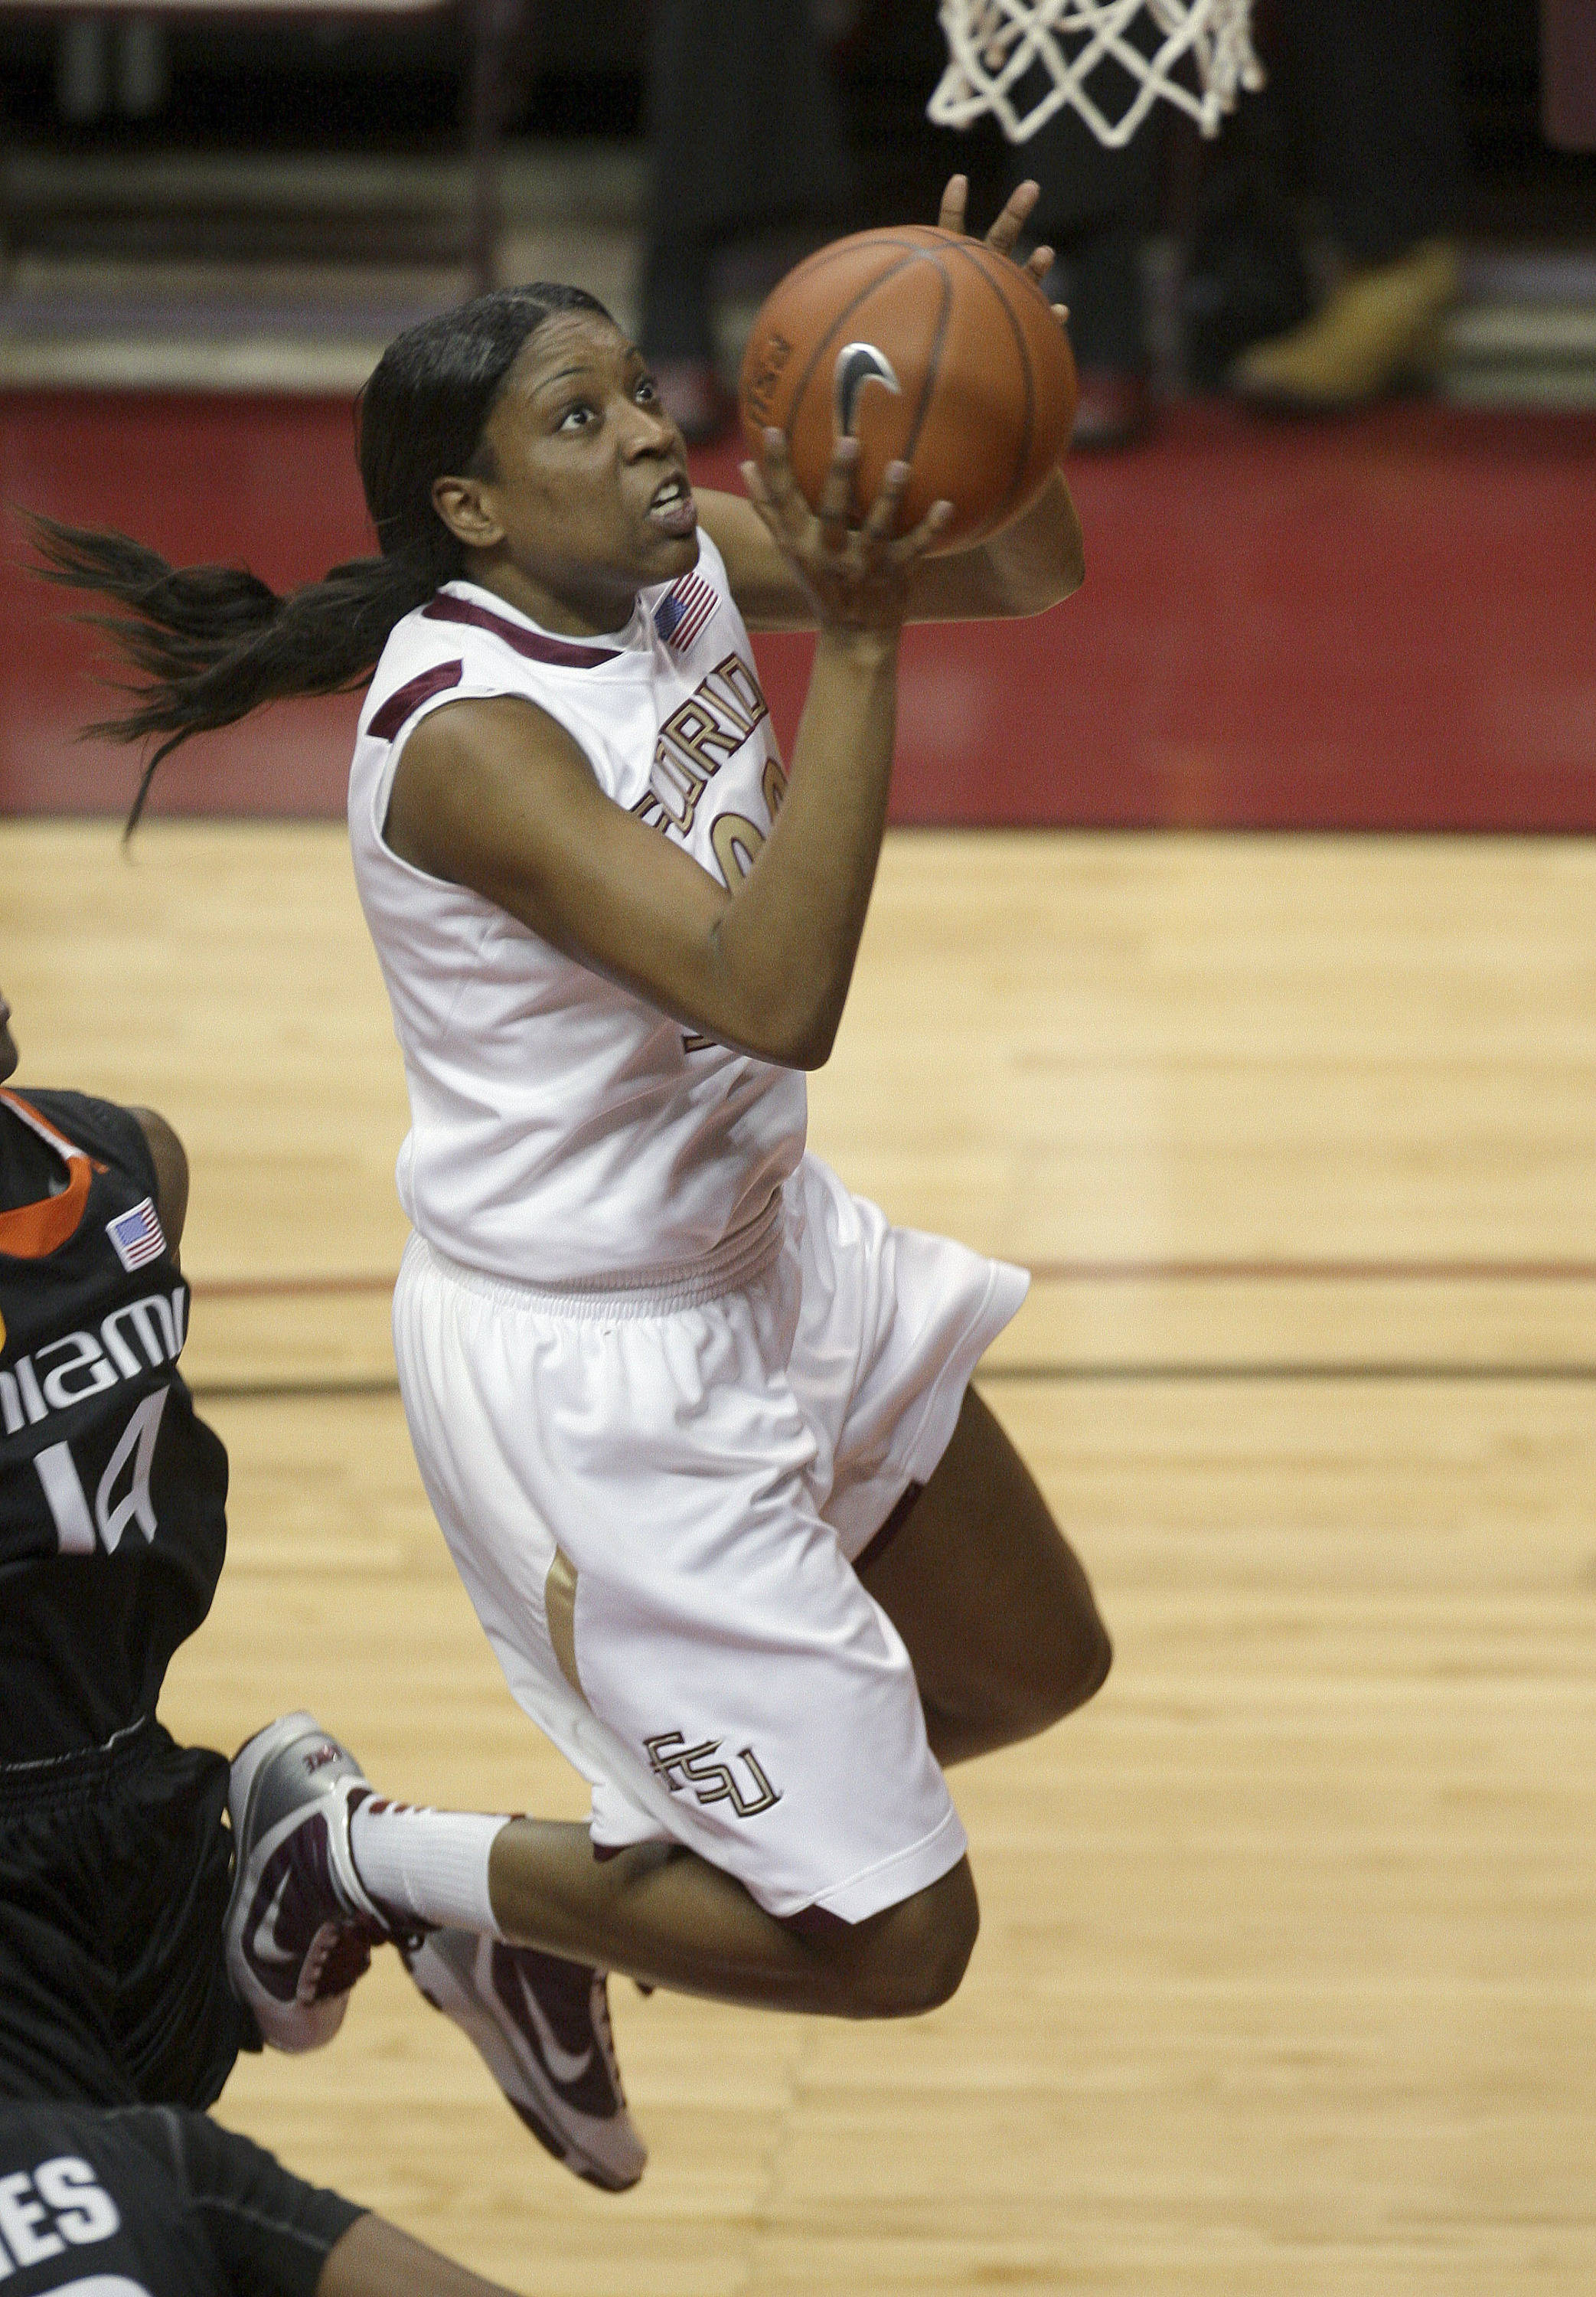 Florida State's Chasity Clayton drives to the basket during the first half of an NCAA college basketball game against Miami, Thursday, Feb. 25, 2010, in Tallahassee, Fla. (AP Photo/Phil Coale)